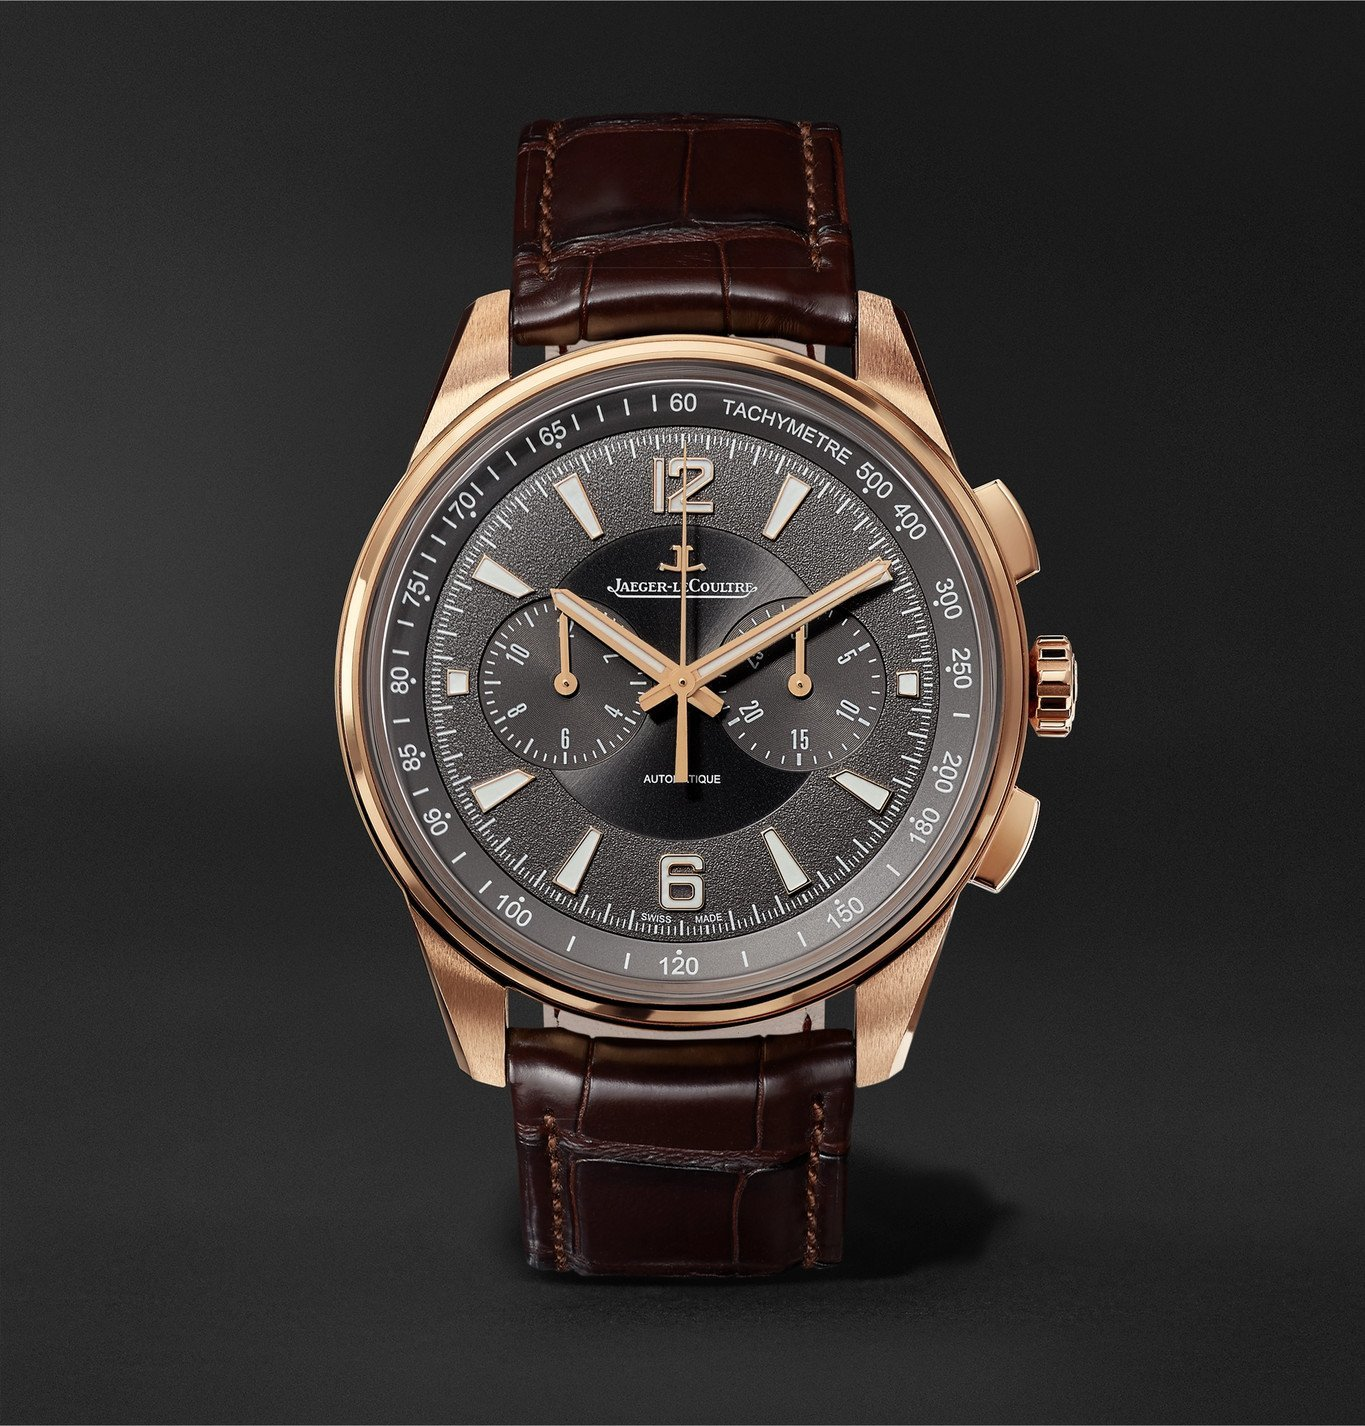 Photo: Jaeger-LeCoultre - Polaris Automatic Chronograph 42mm Rose Gold and Alligator Watch, Ref. No. Q9022450 - Black